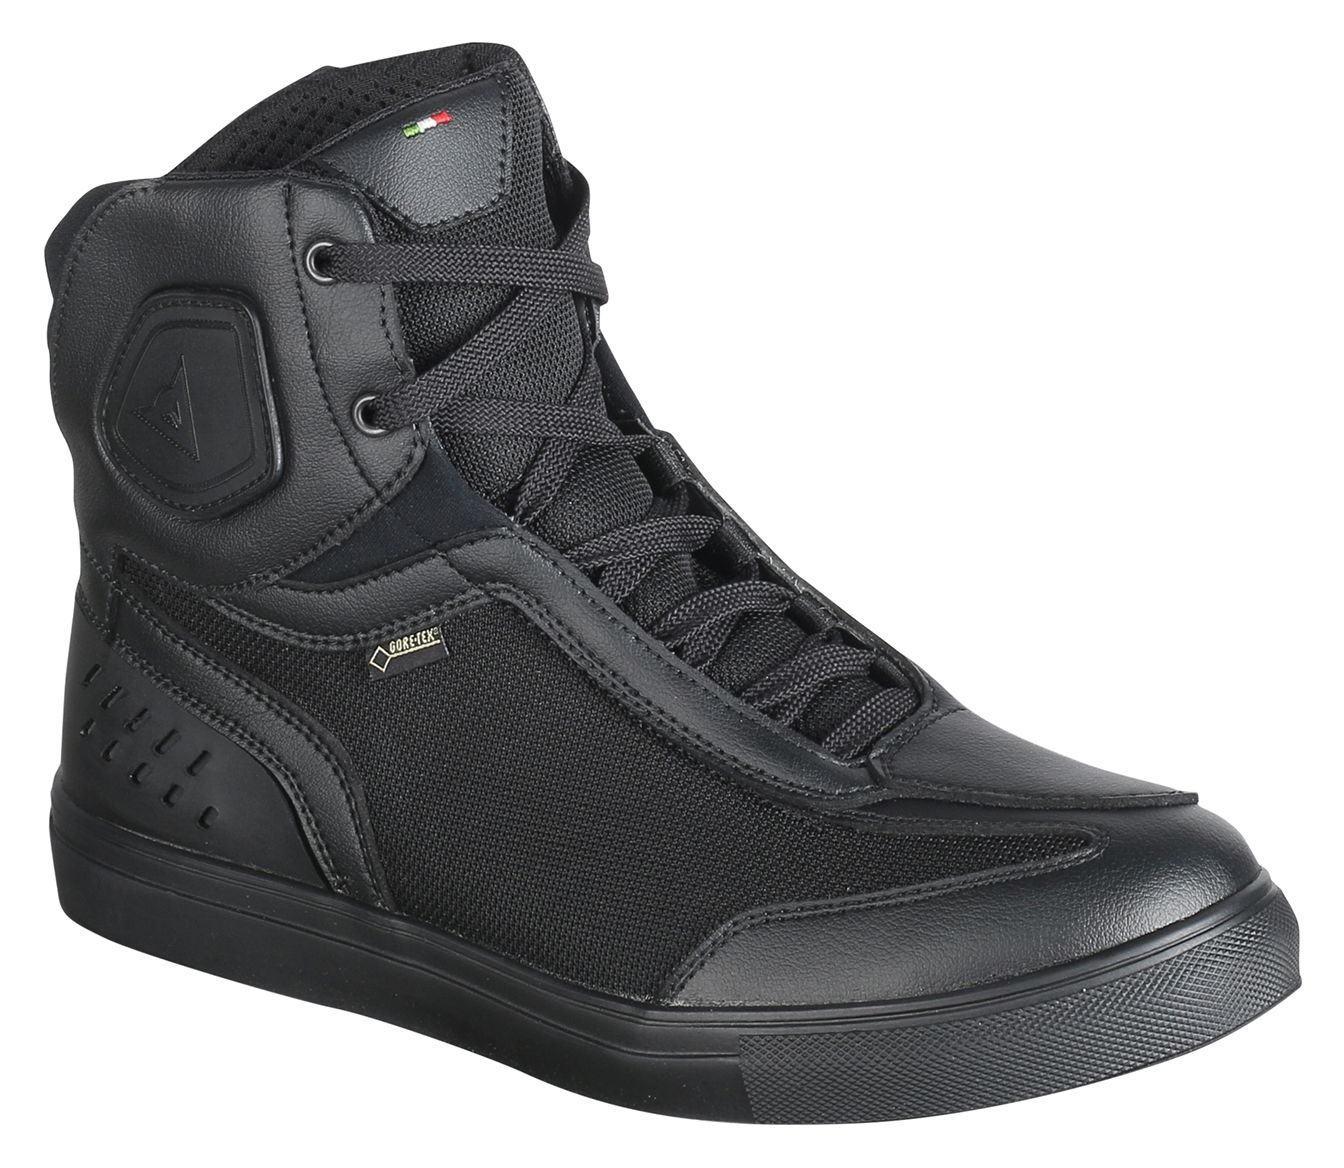 Dainese Street Darker Gore Tex Shoes Revzilla Dark Shoe Motorcycle Shoes Touring Boots